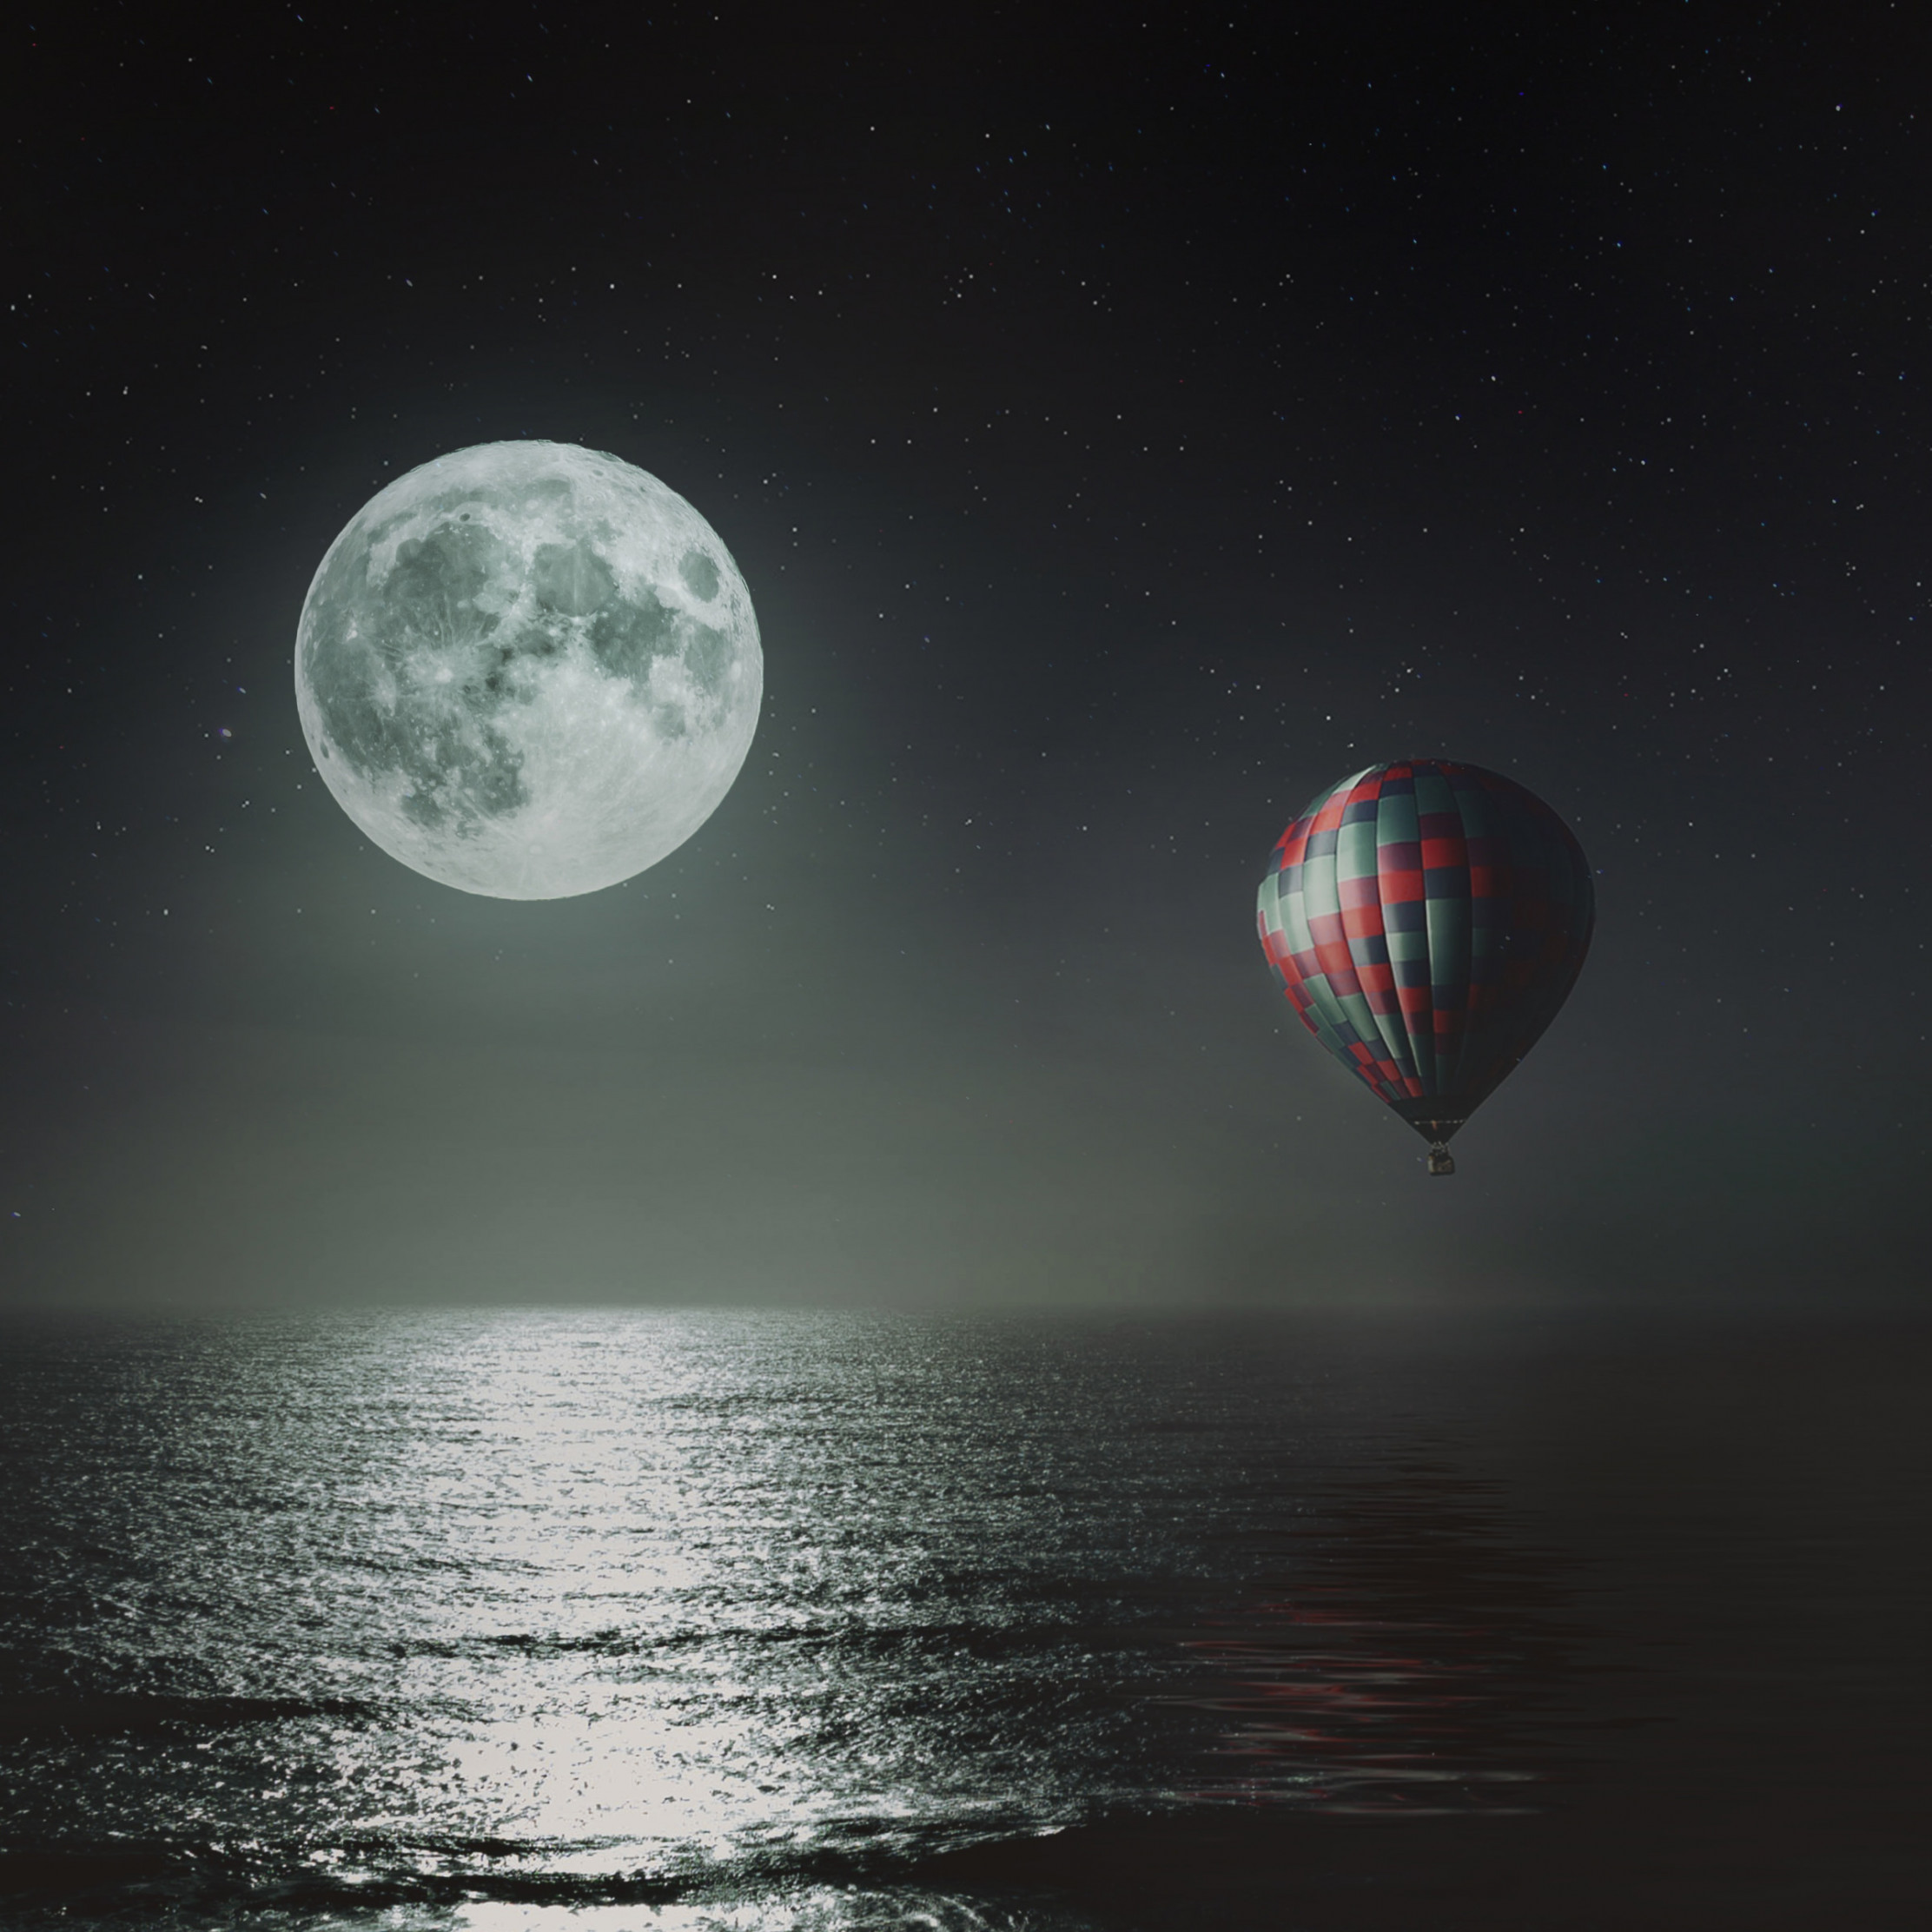 Hot air balloon over the night sky wallpaper 2224x2224